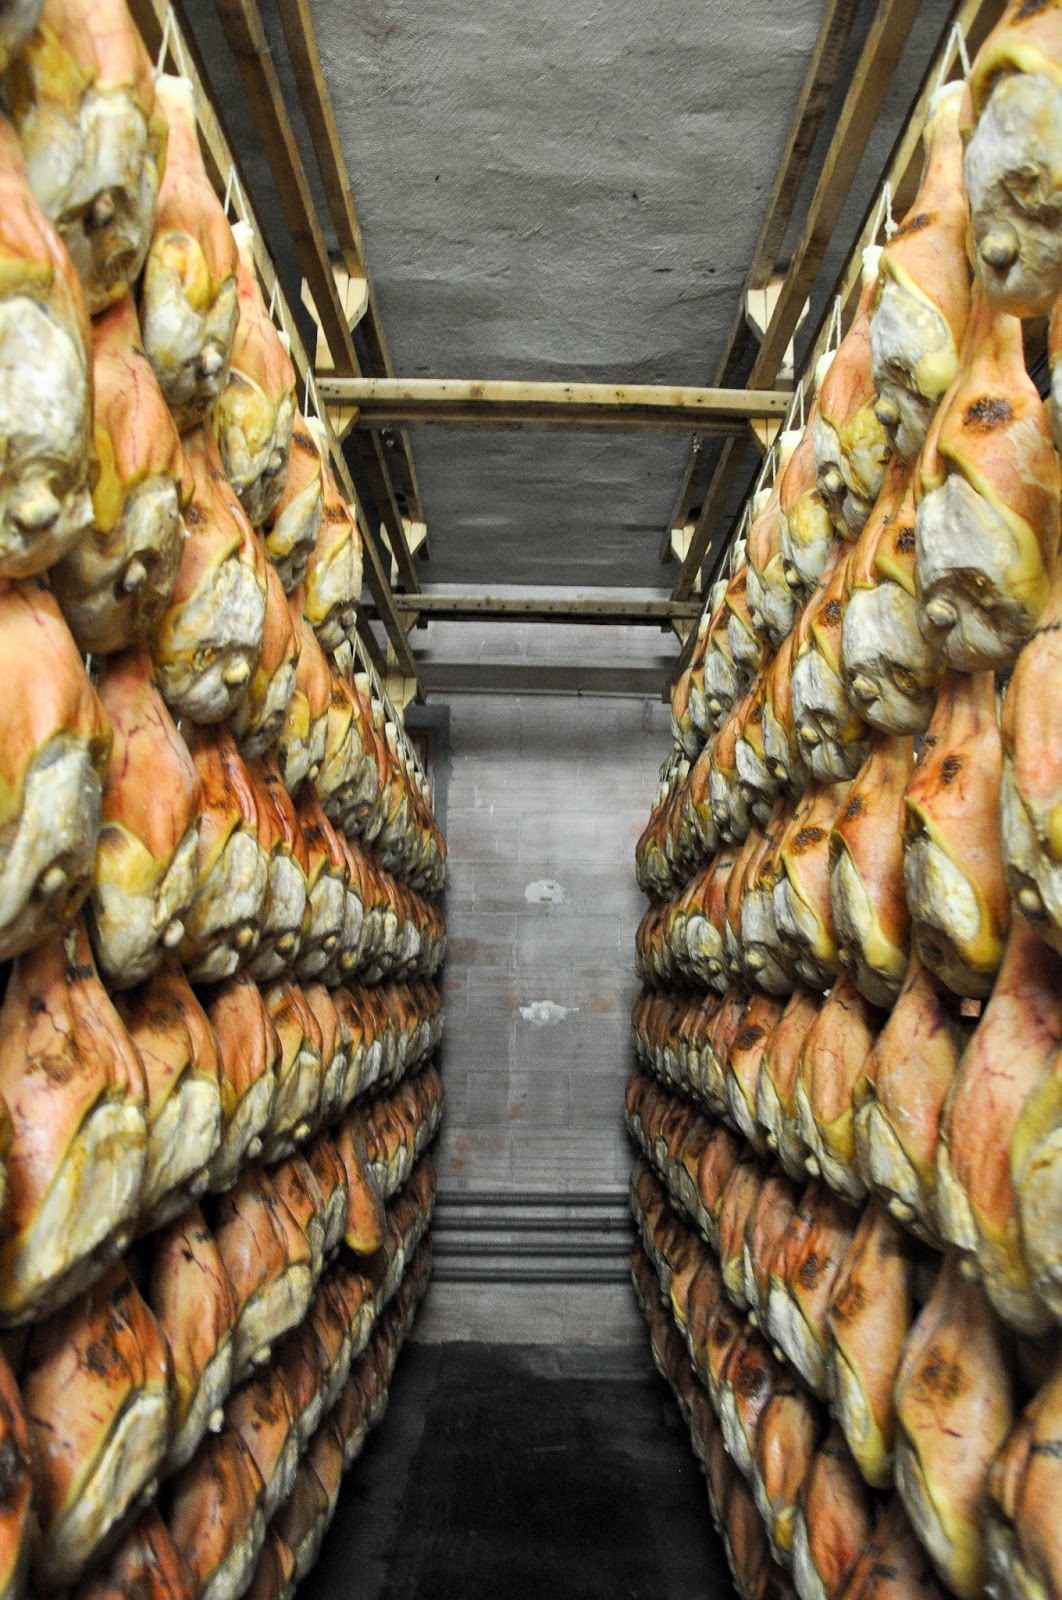 Prosciutto maturing for 18 to 24 months